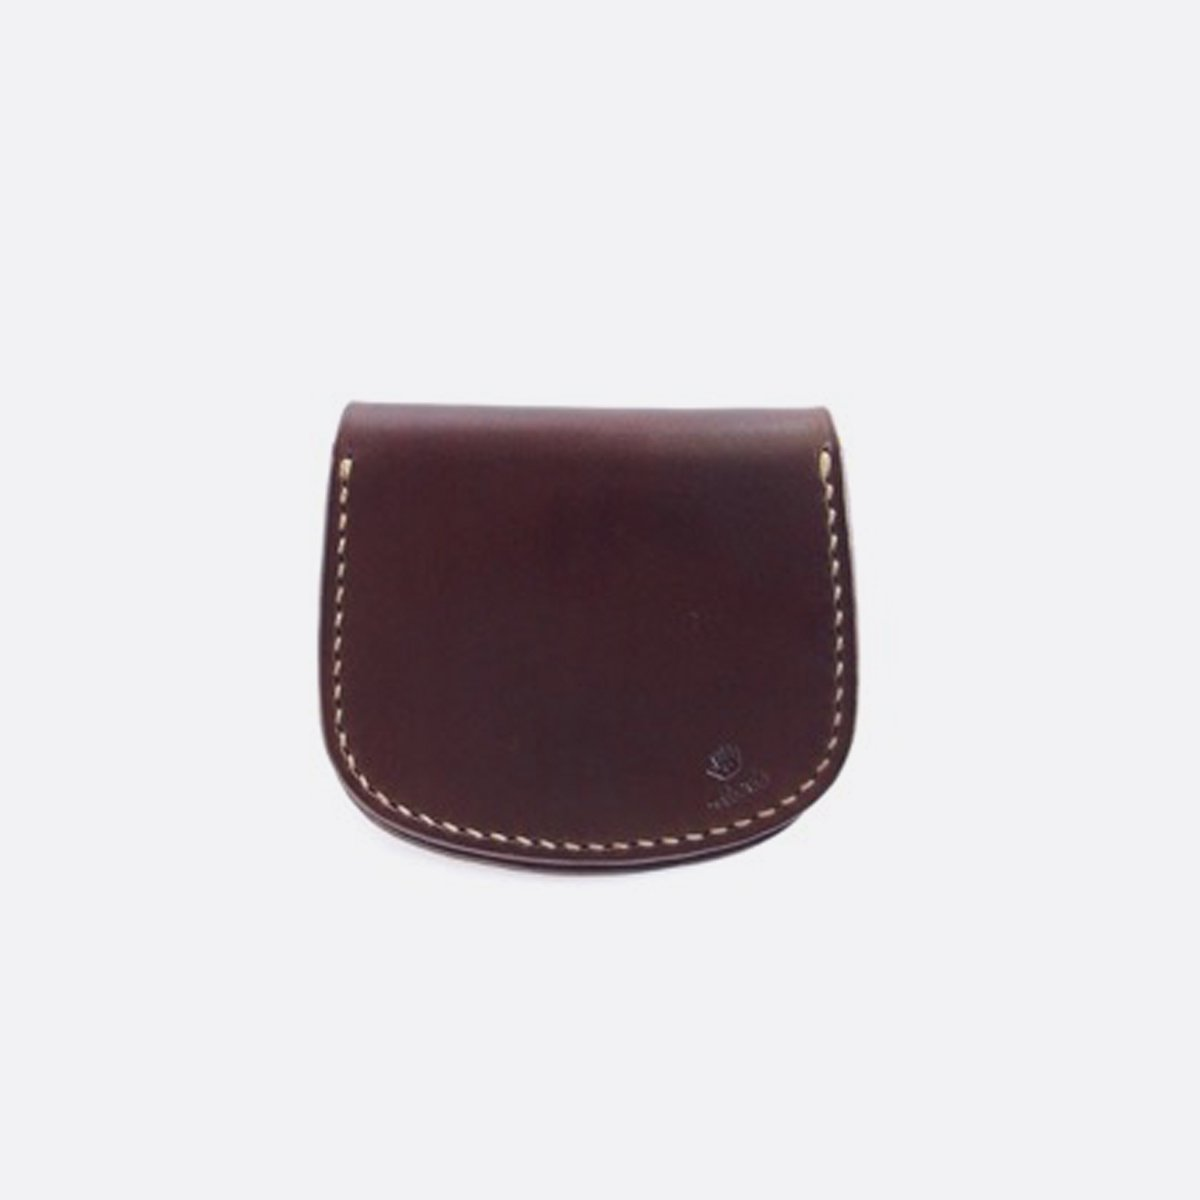 MOTO LEATHER COINCASE C1D (BROWN)